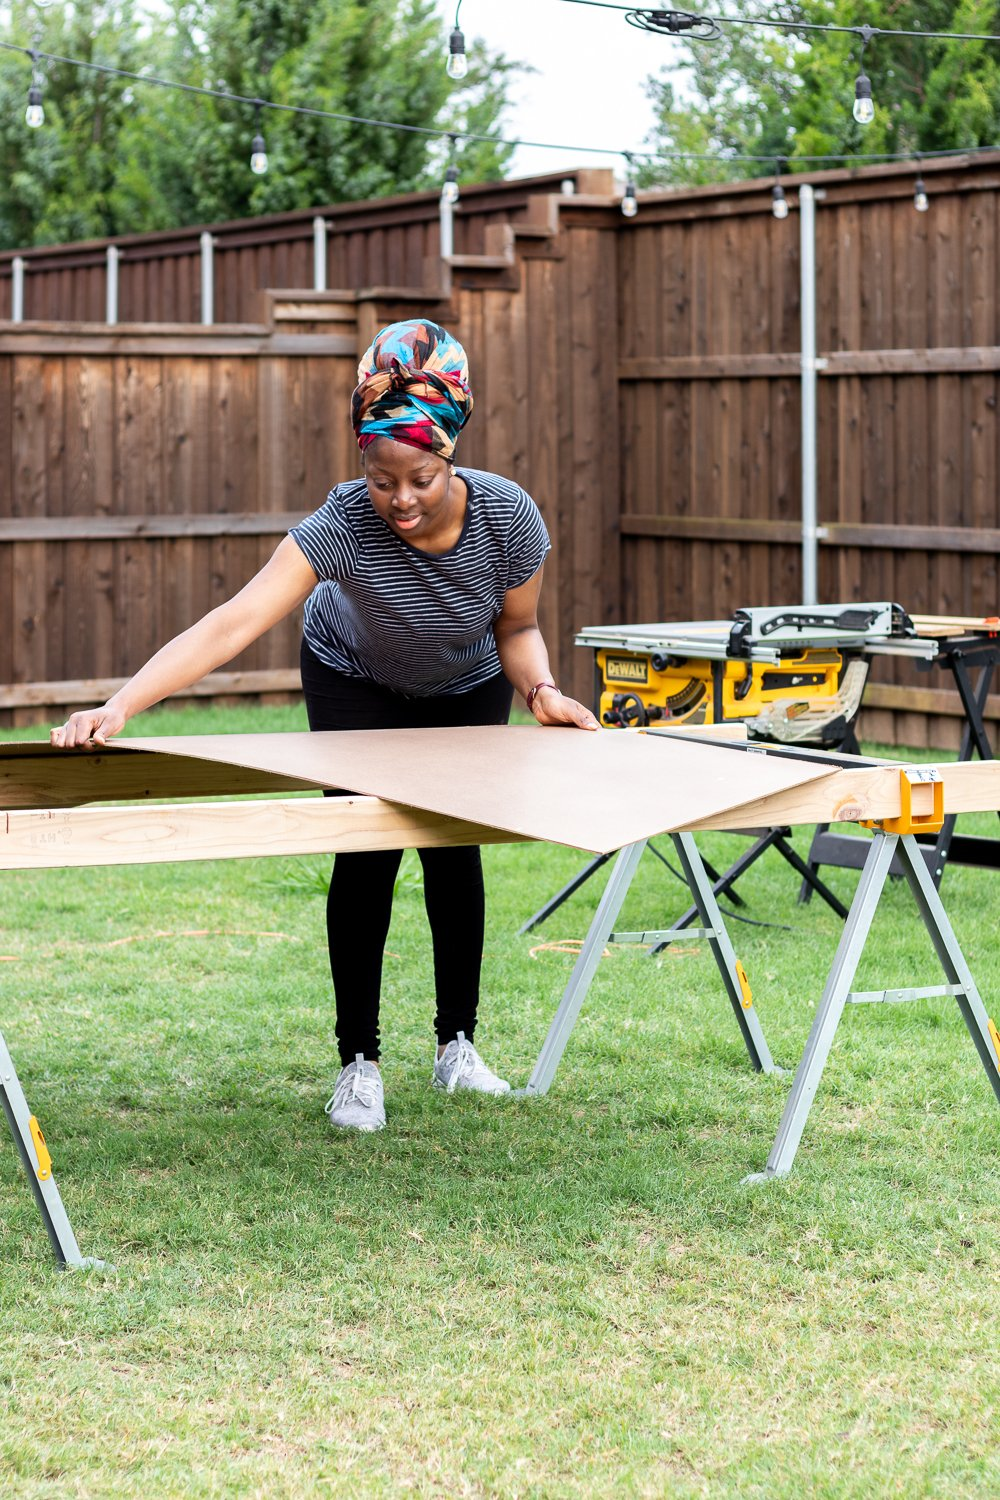 cut hardboard with circular saw or table saw